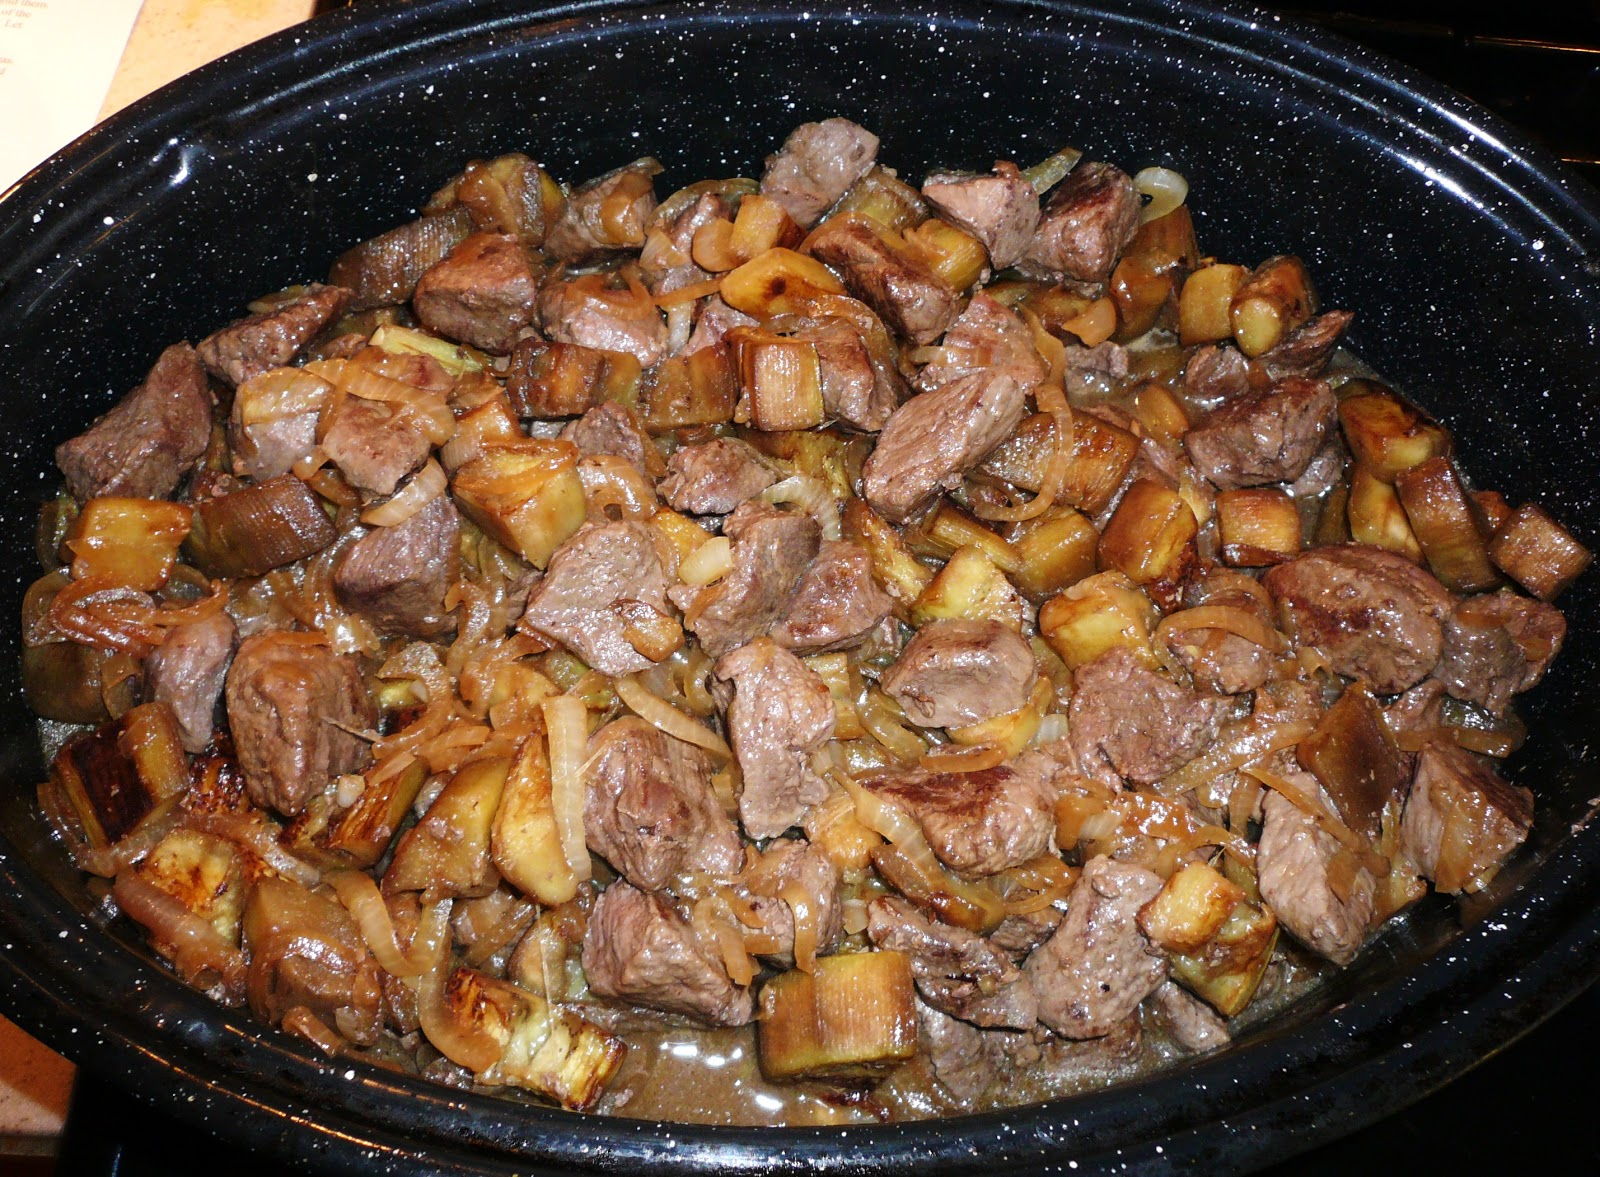 KITCHEN EXCURSIONS: Lamb and Eggplant Casserole